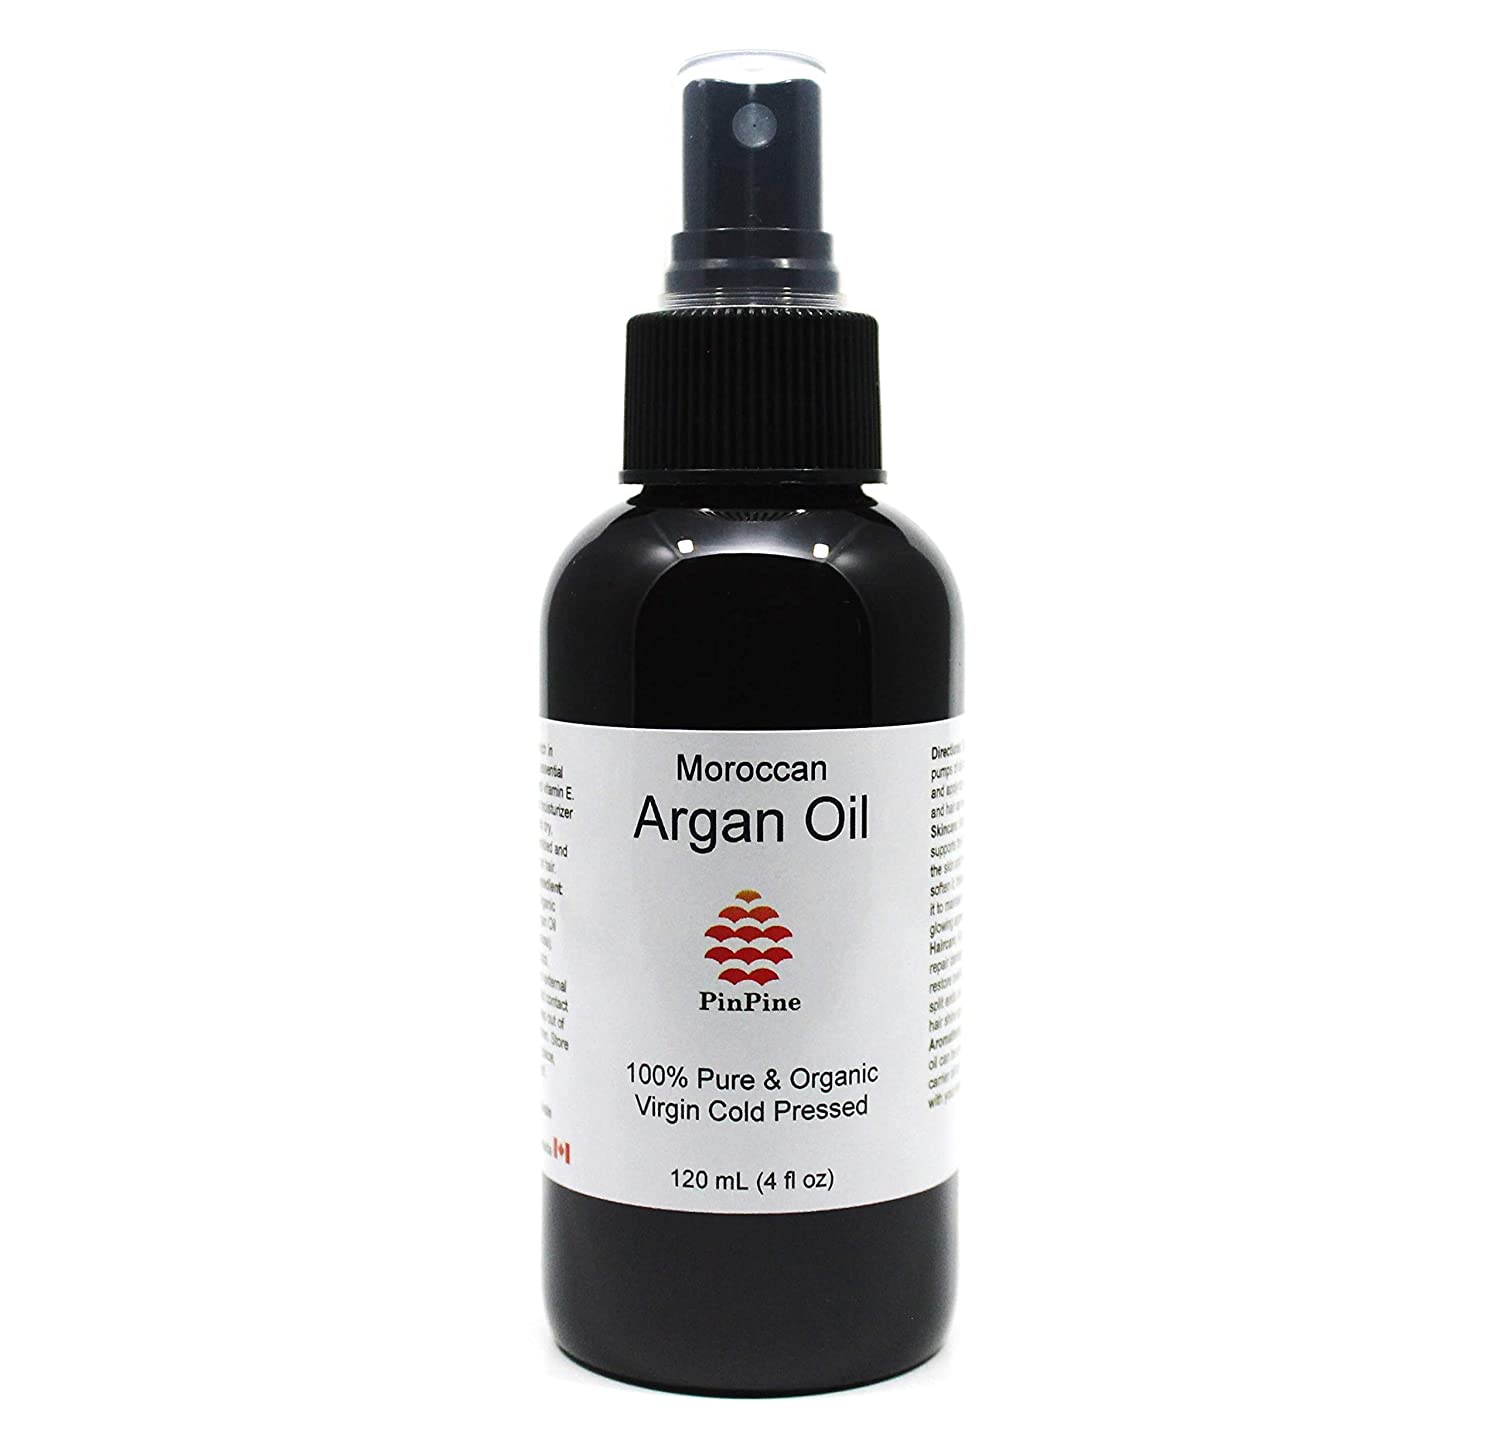 100% Pure Organic Moroccan Argan Oil (Carrier Oil) - Premium Quality - 120 mL (4 fl oz) in Spray Bottle for Easy Application PinPine Naturals